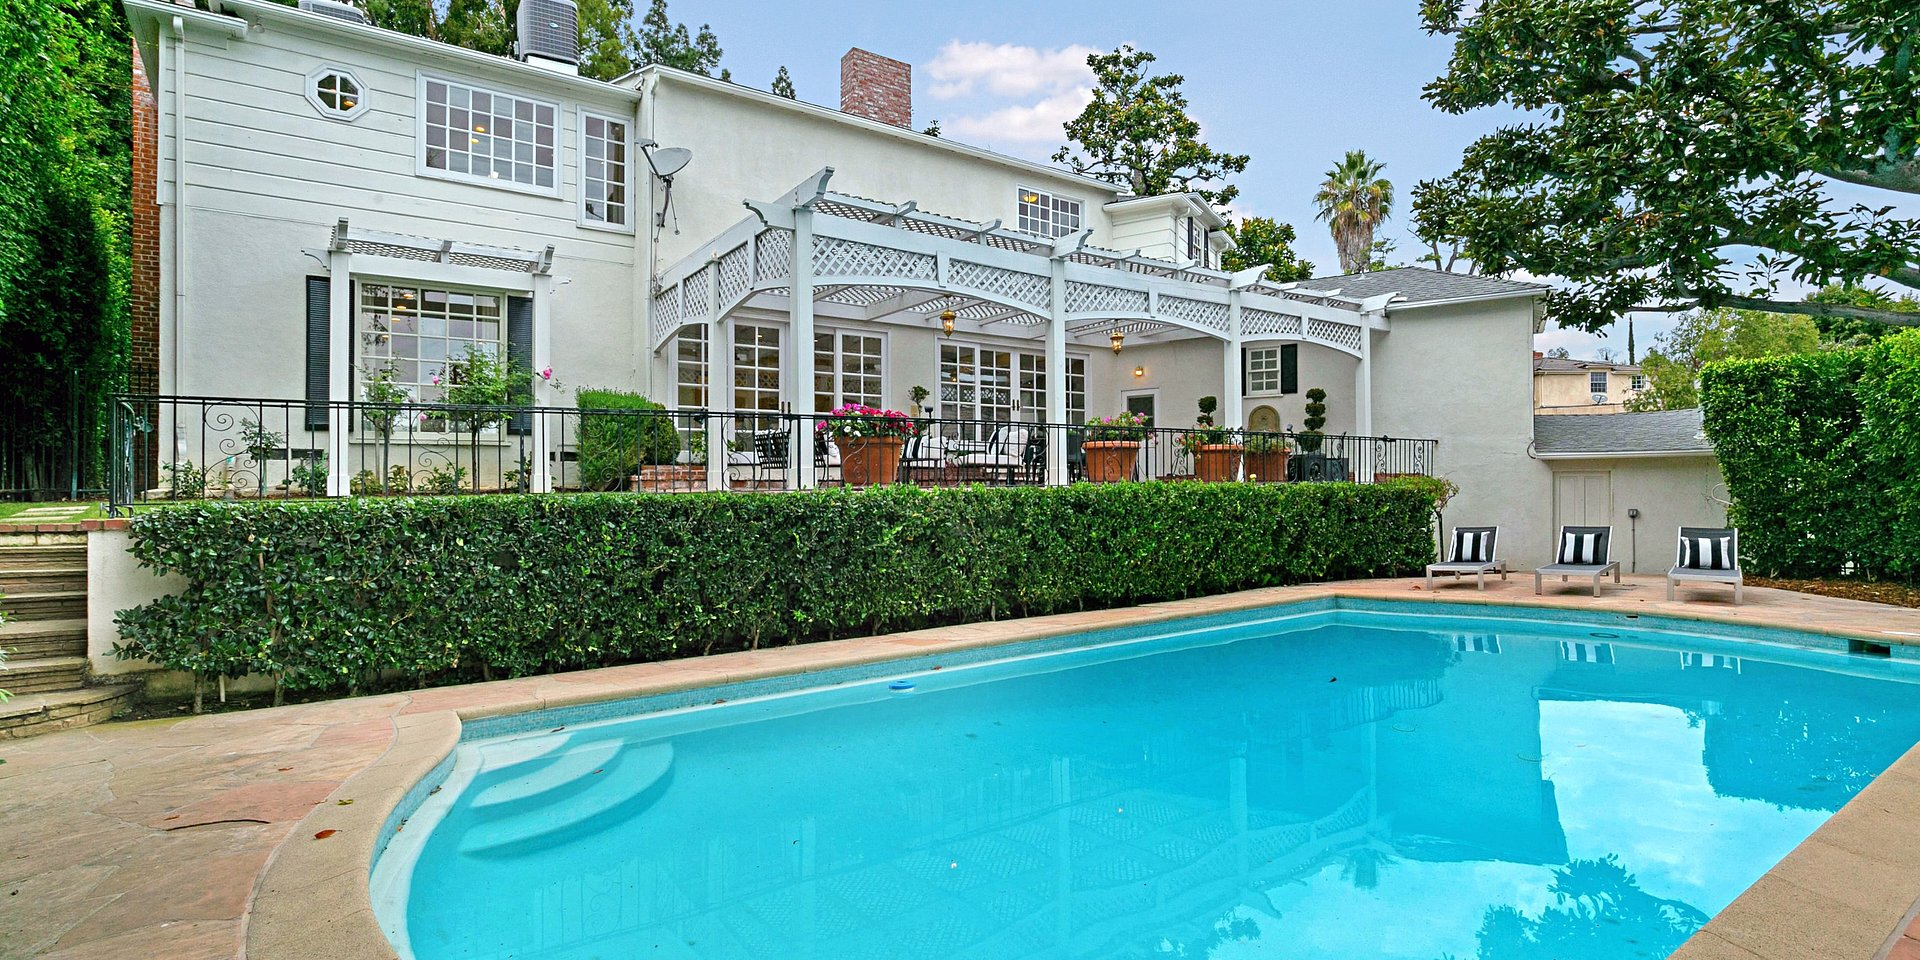 Coldwell Banker Residential Brokerage Lists Los Angeles Property Designed by Noted Architect Arthur W. Hawes for $4.595 Million